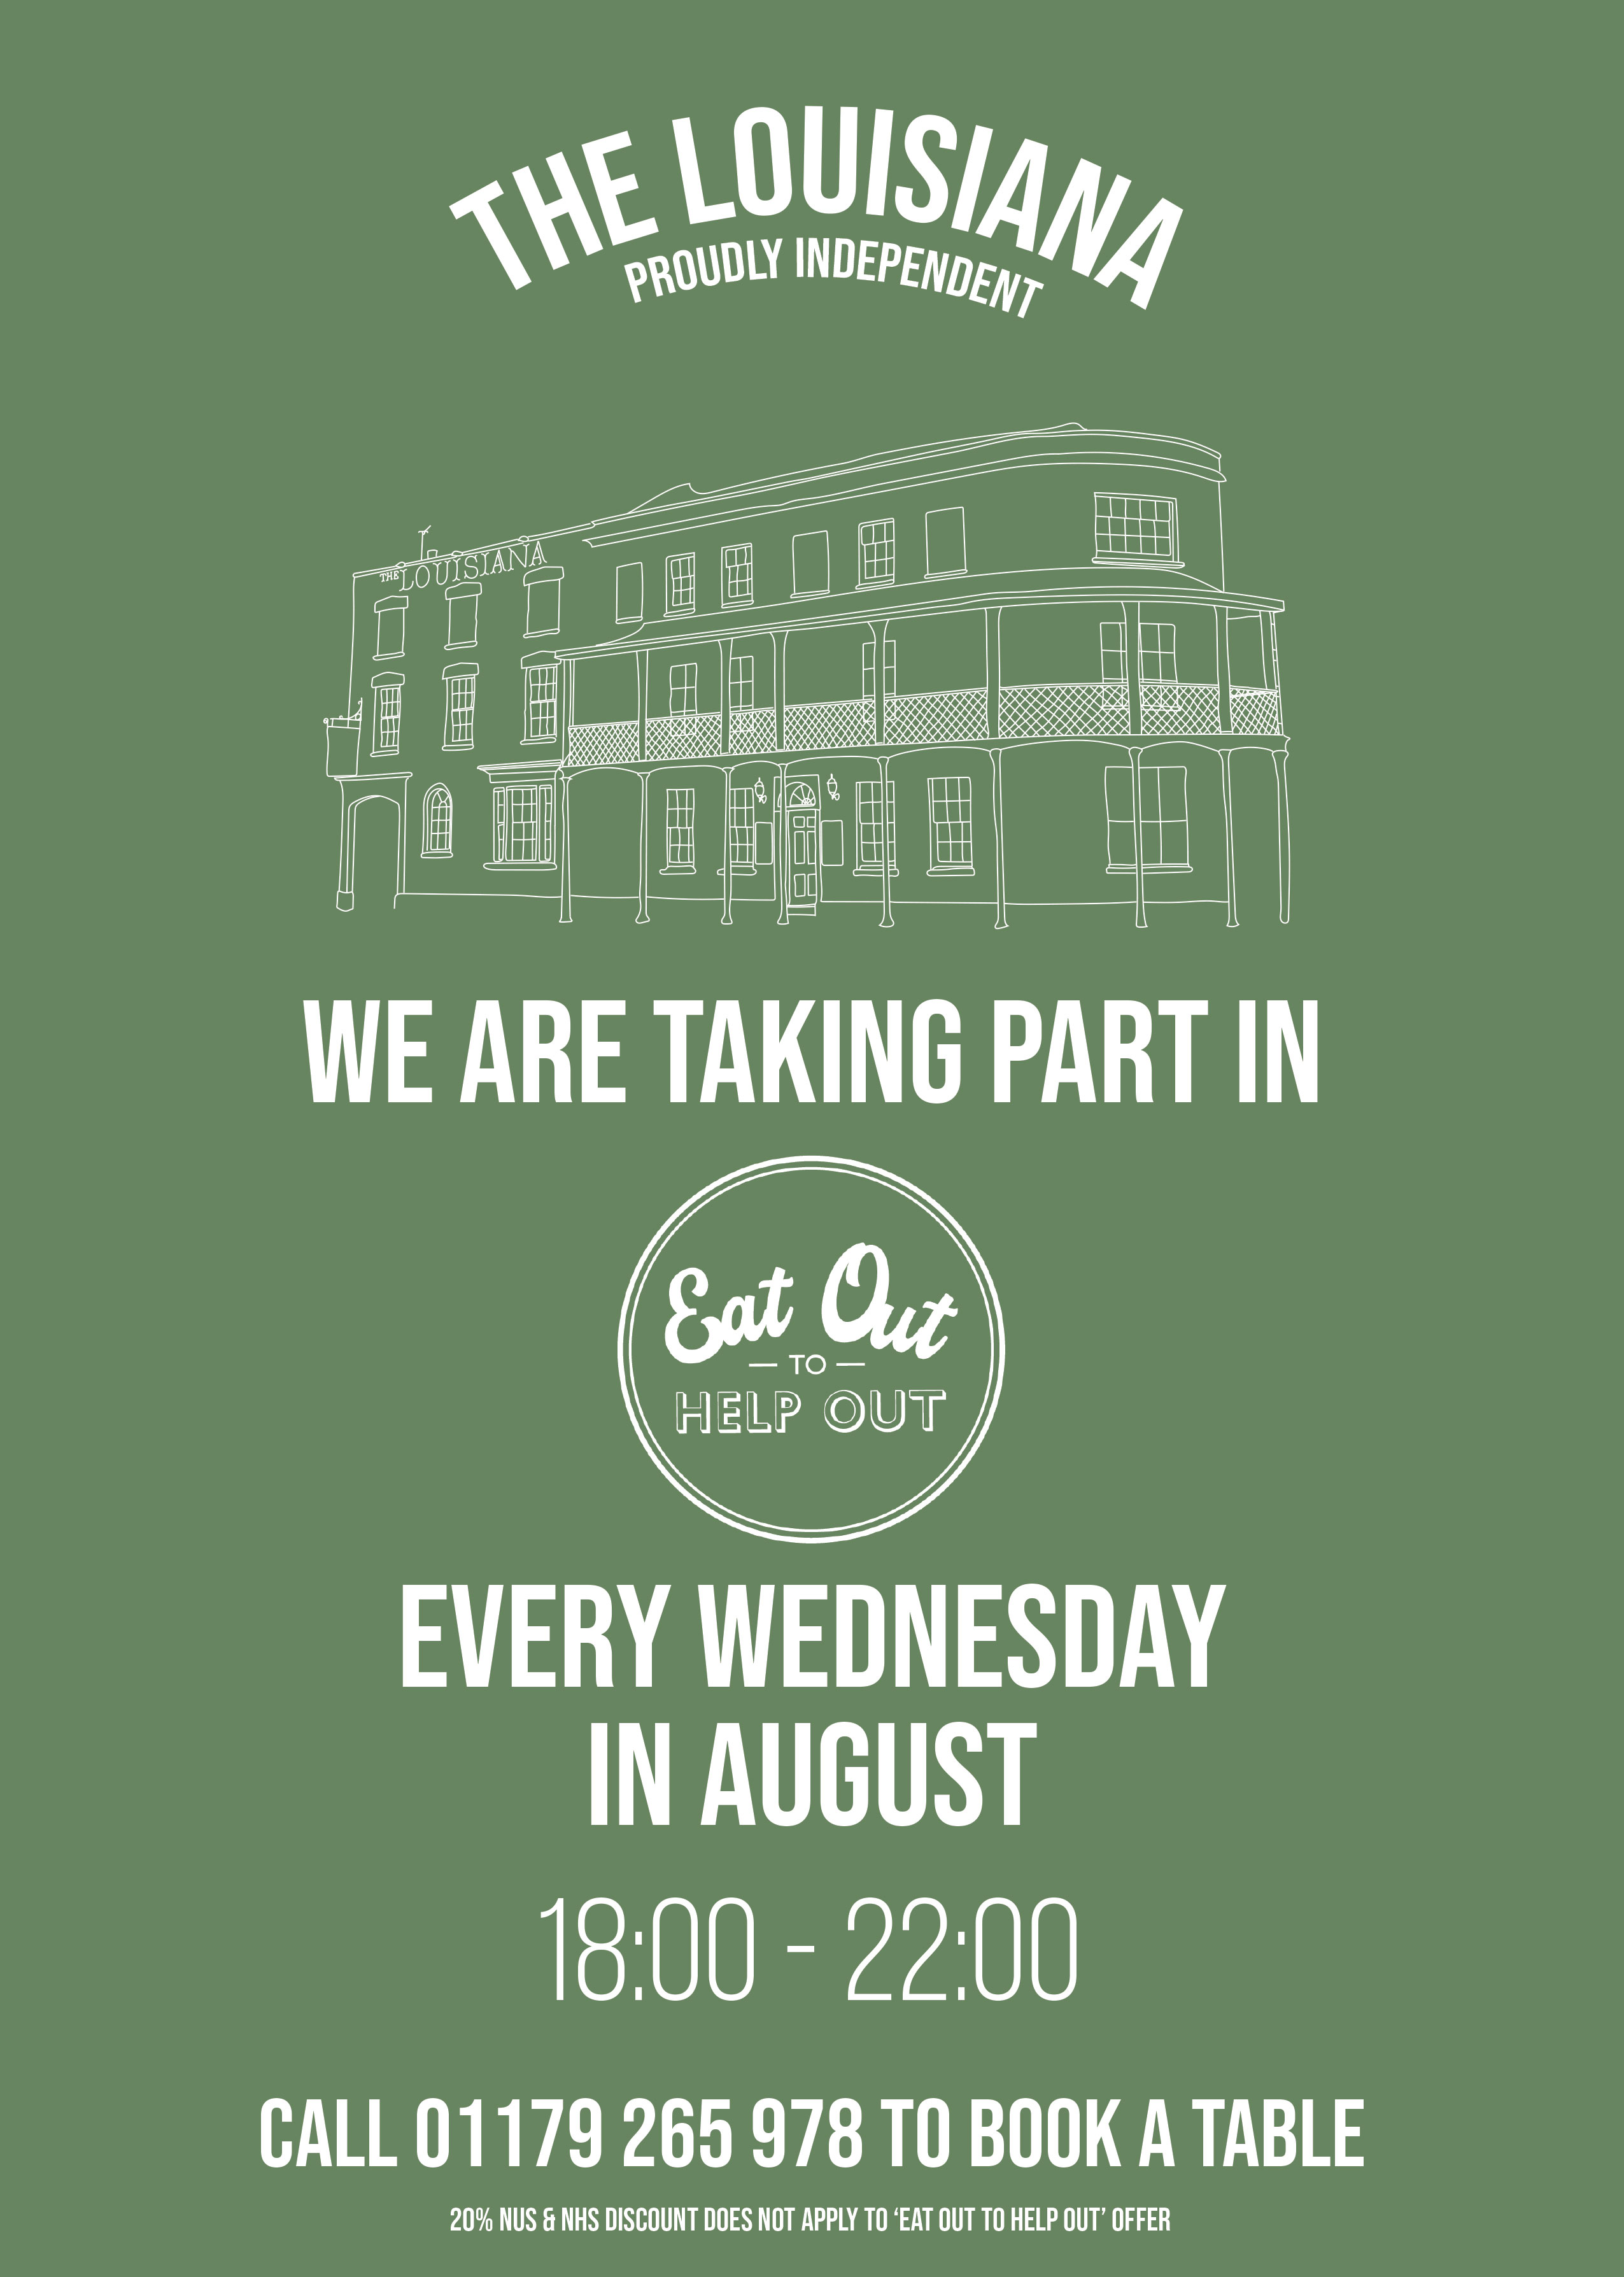 Every Wednesday in August 2020 - Eat Out to Help Out - Call 0117 926 5978 to reserve a Table